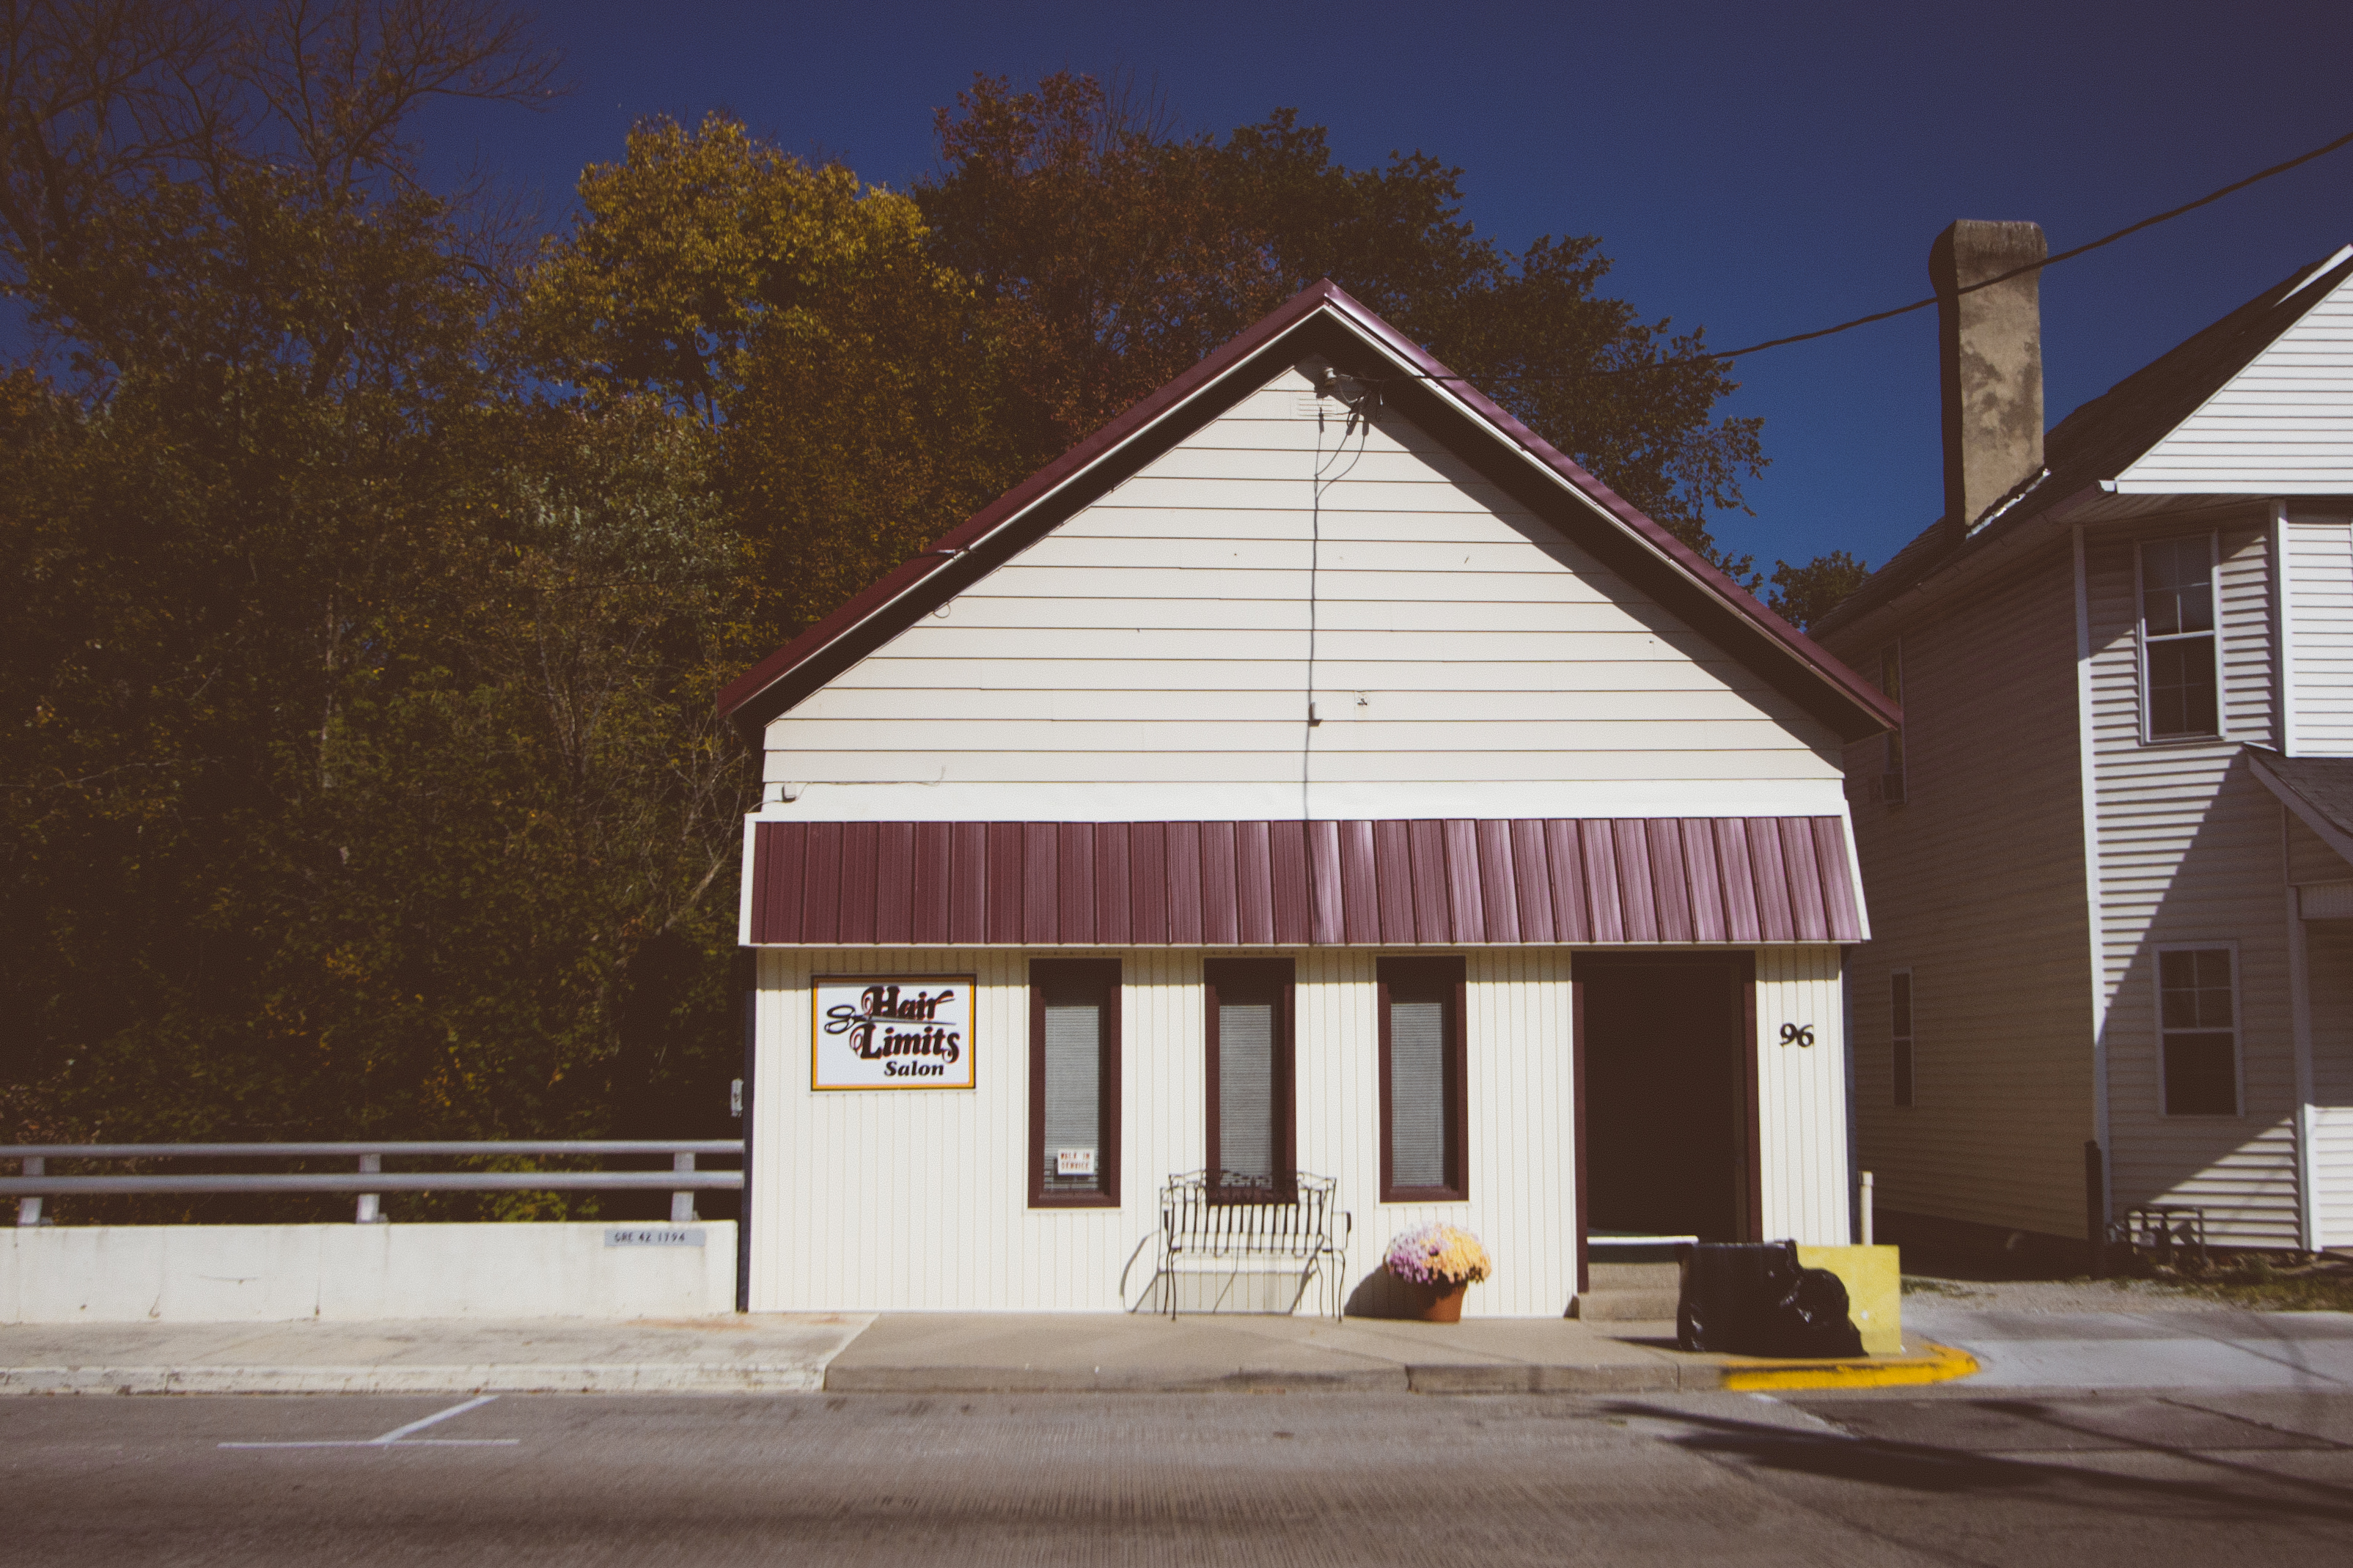 Man Cave Barber Stoney Creek : Cedars hair care in the ville